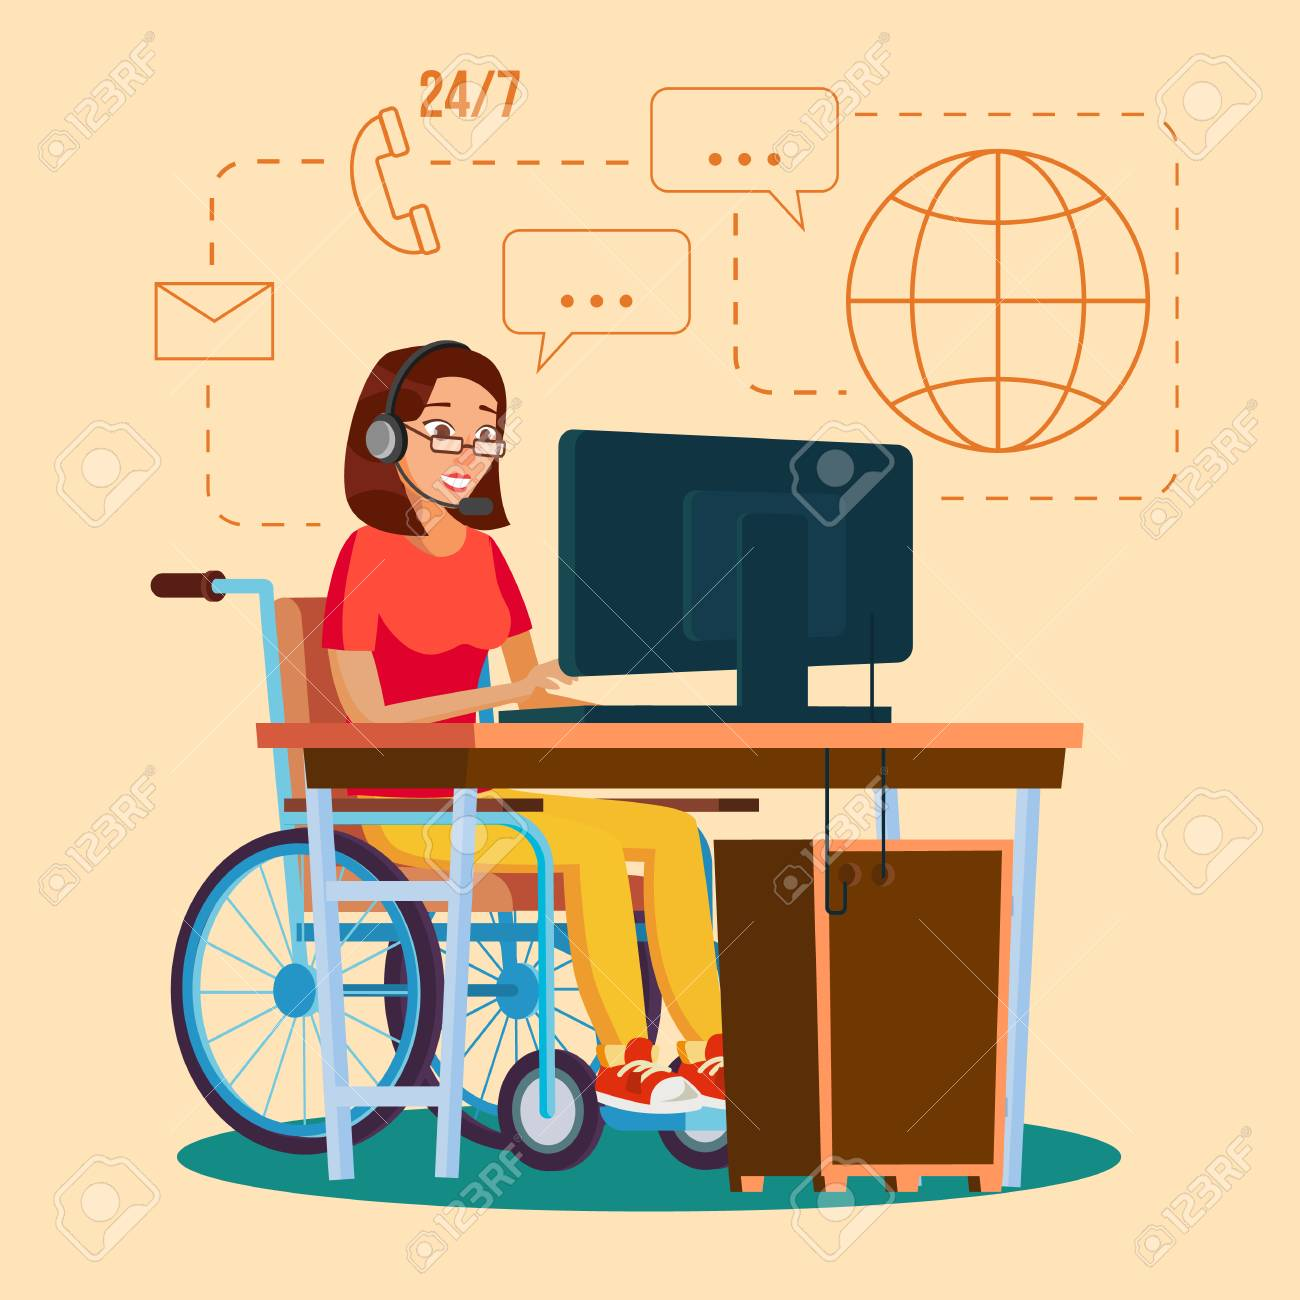 Disabled Woman Working Vector. Socialization Concept. Wheelchair With Person. Isolated Flat Cartoon Character Illustration - 87928810